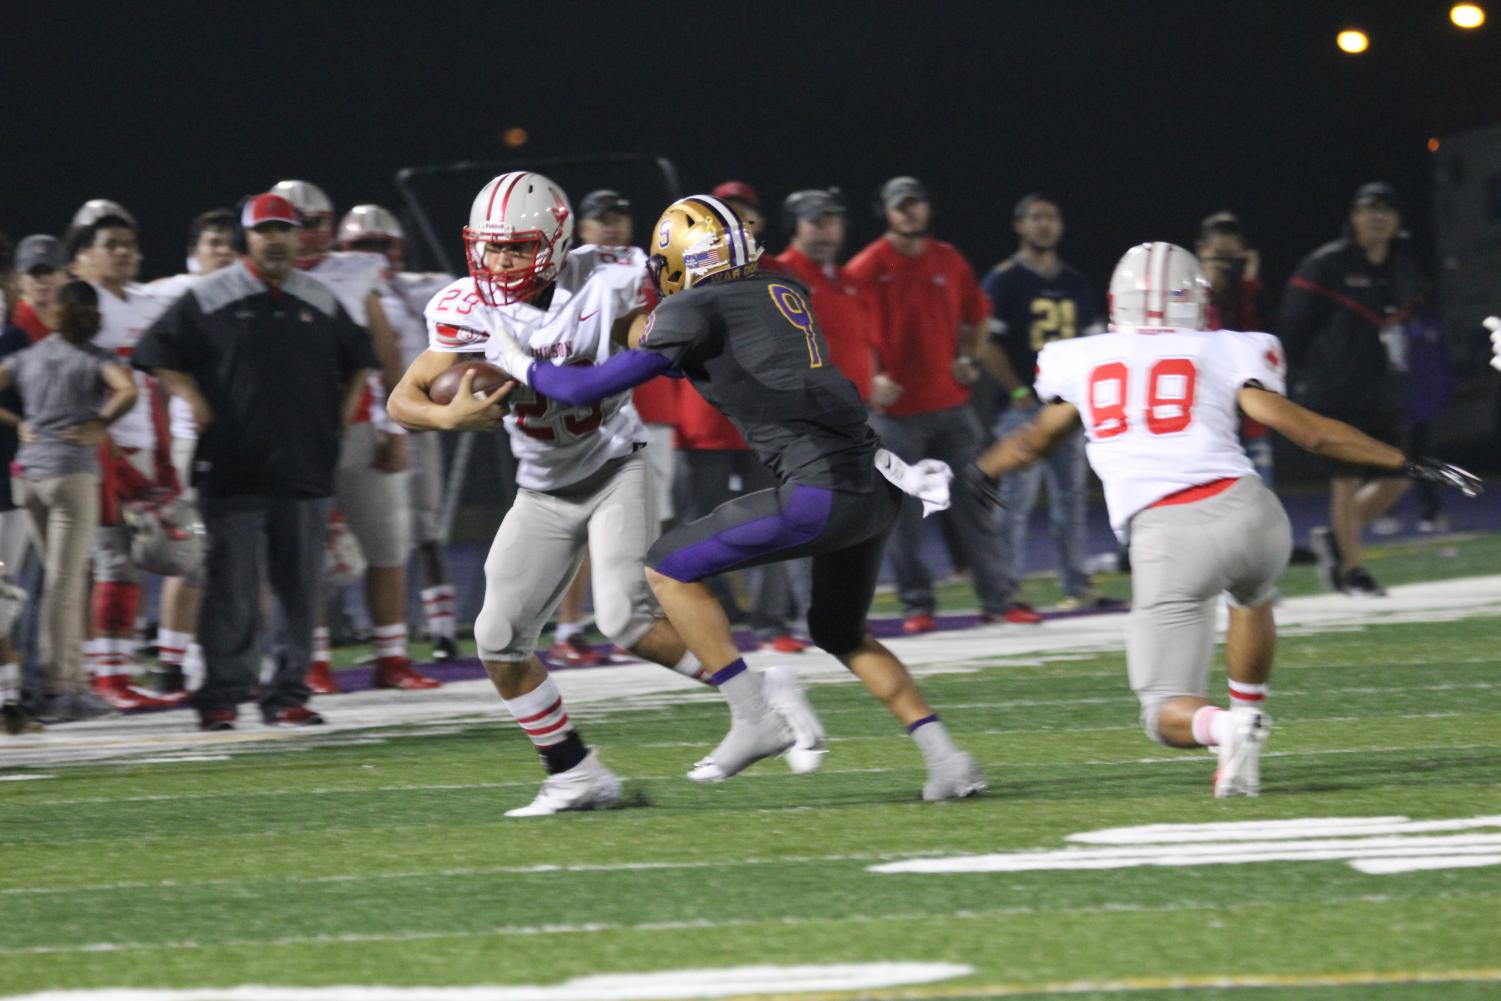 The Rocket receiver stiff arms San Benitos defender to create space. The Rockets ended the night with a score of 69-18.